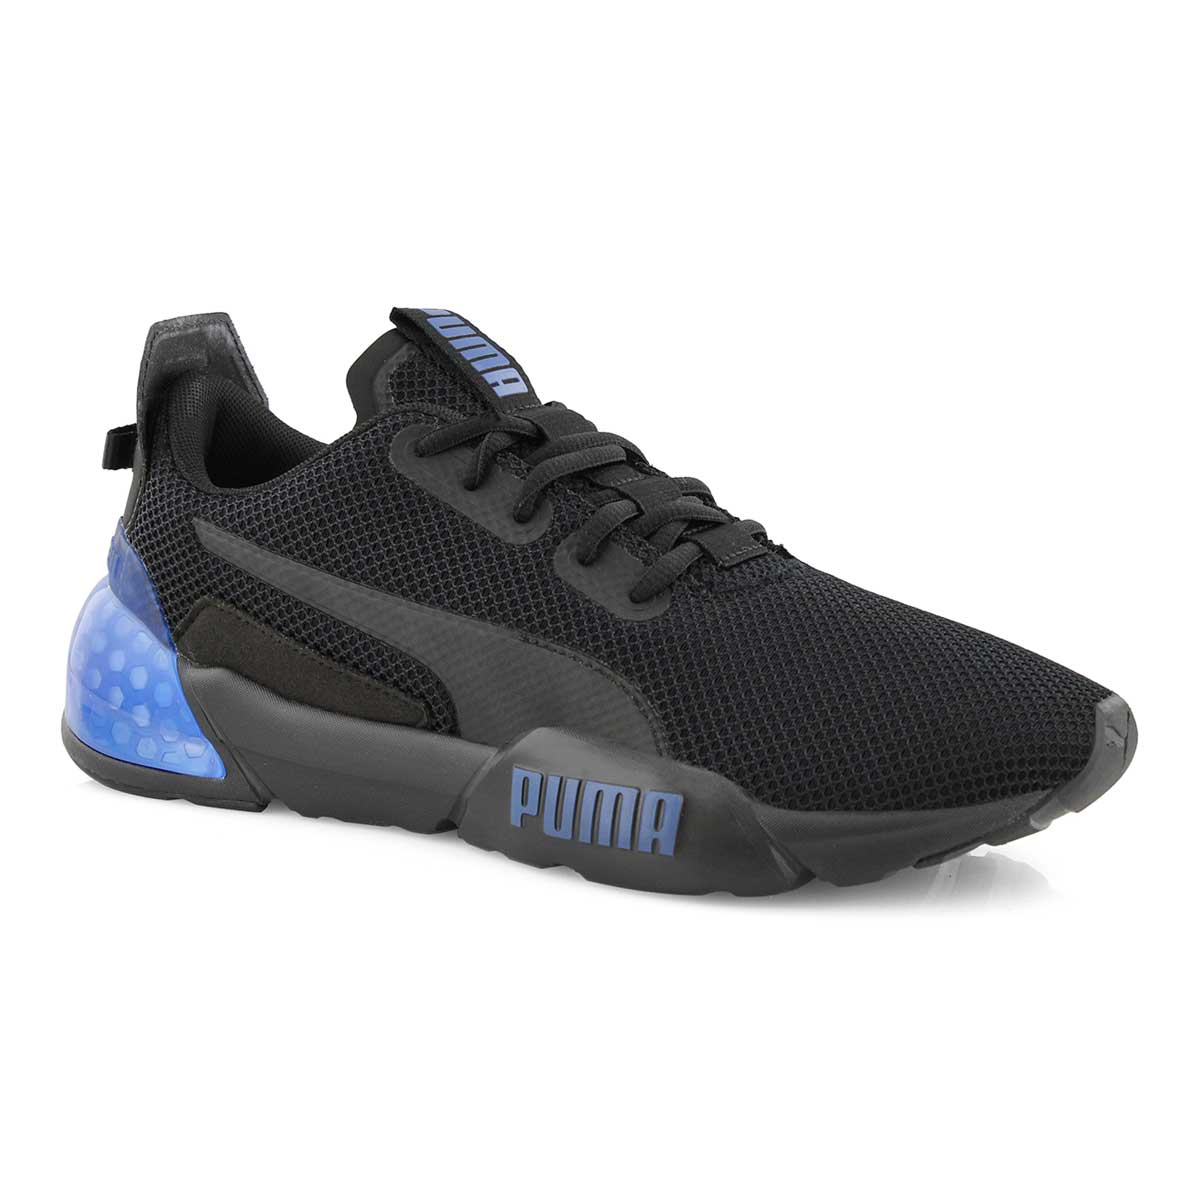 Mns Cell Phase blk/blu lace up sneaker